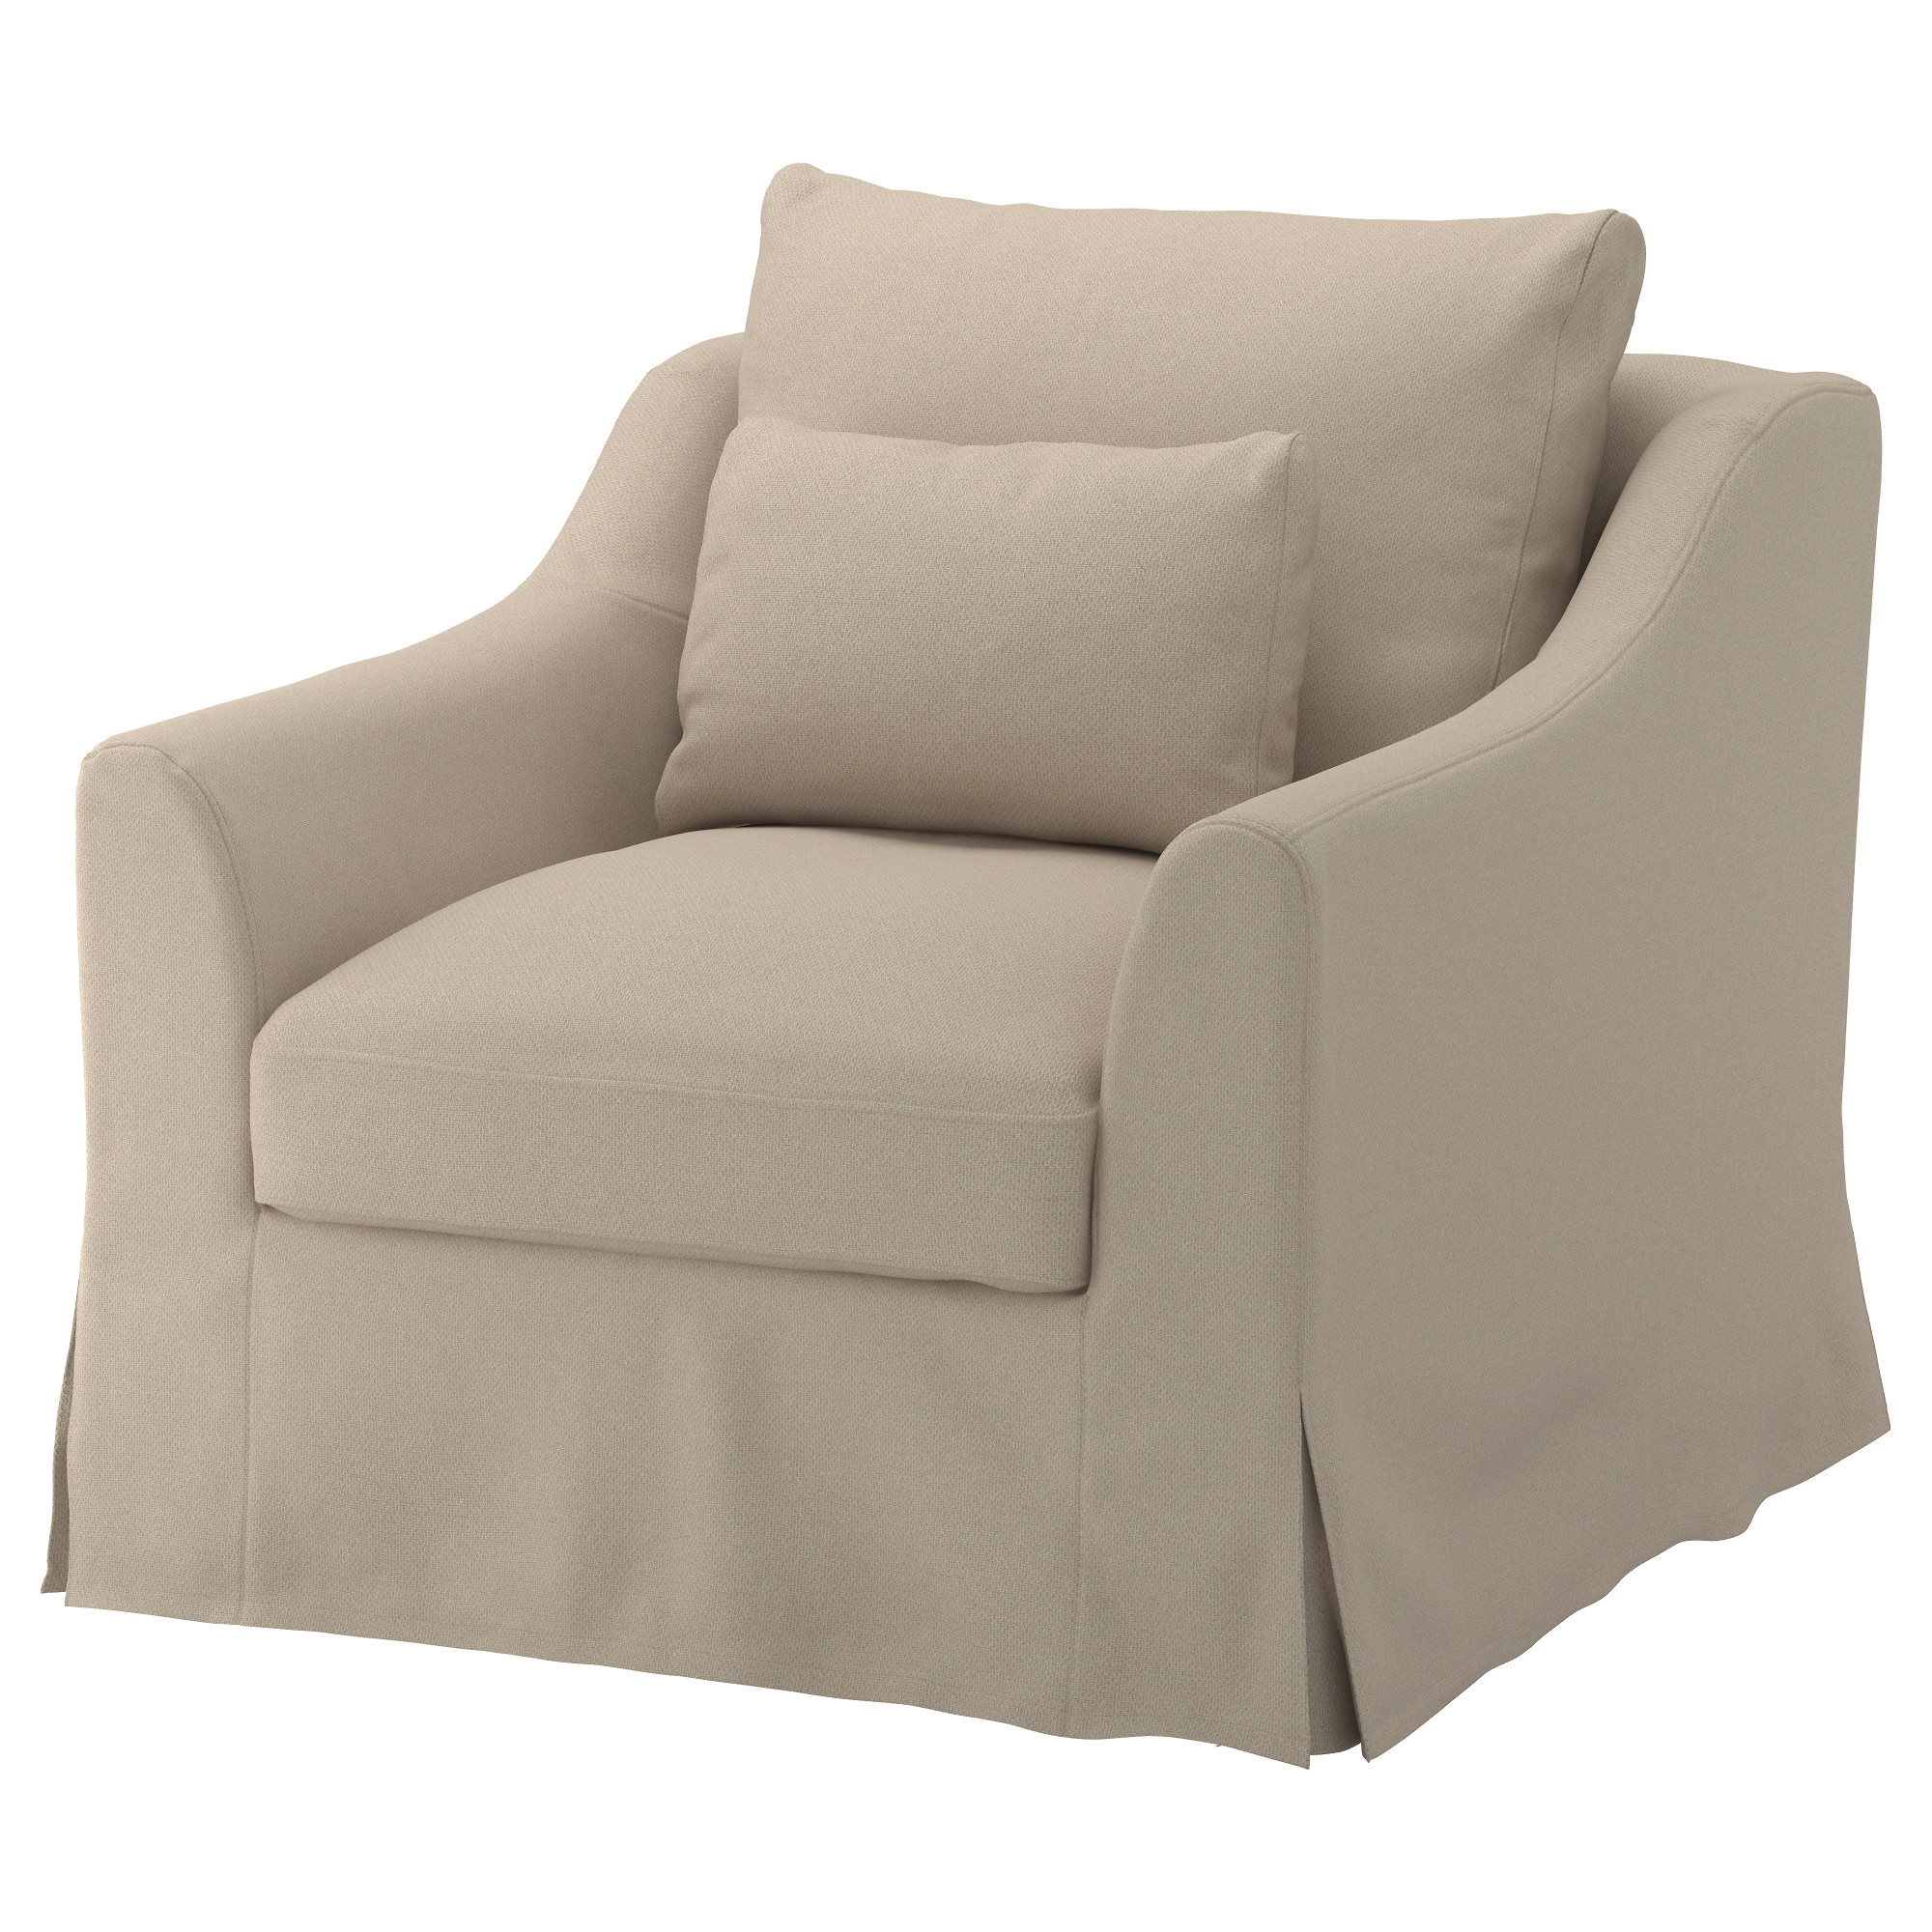 sleeper exterior design that make amazing chairs also into twin ikea bed chair beds convertible turns and